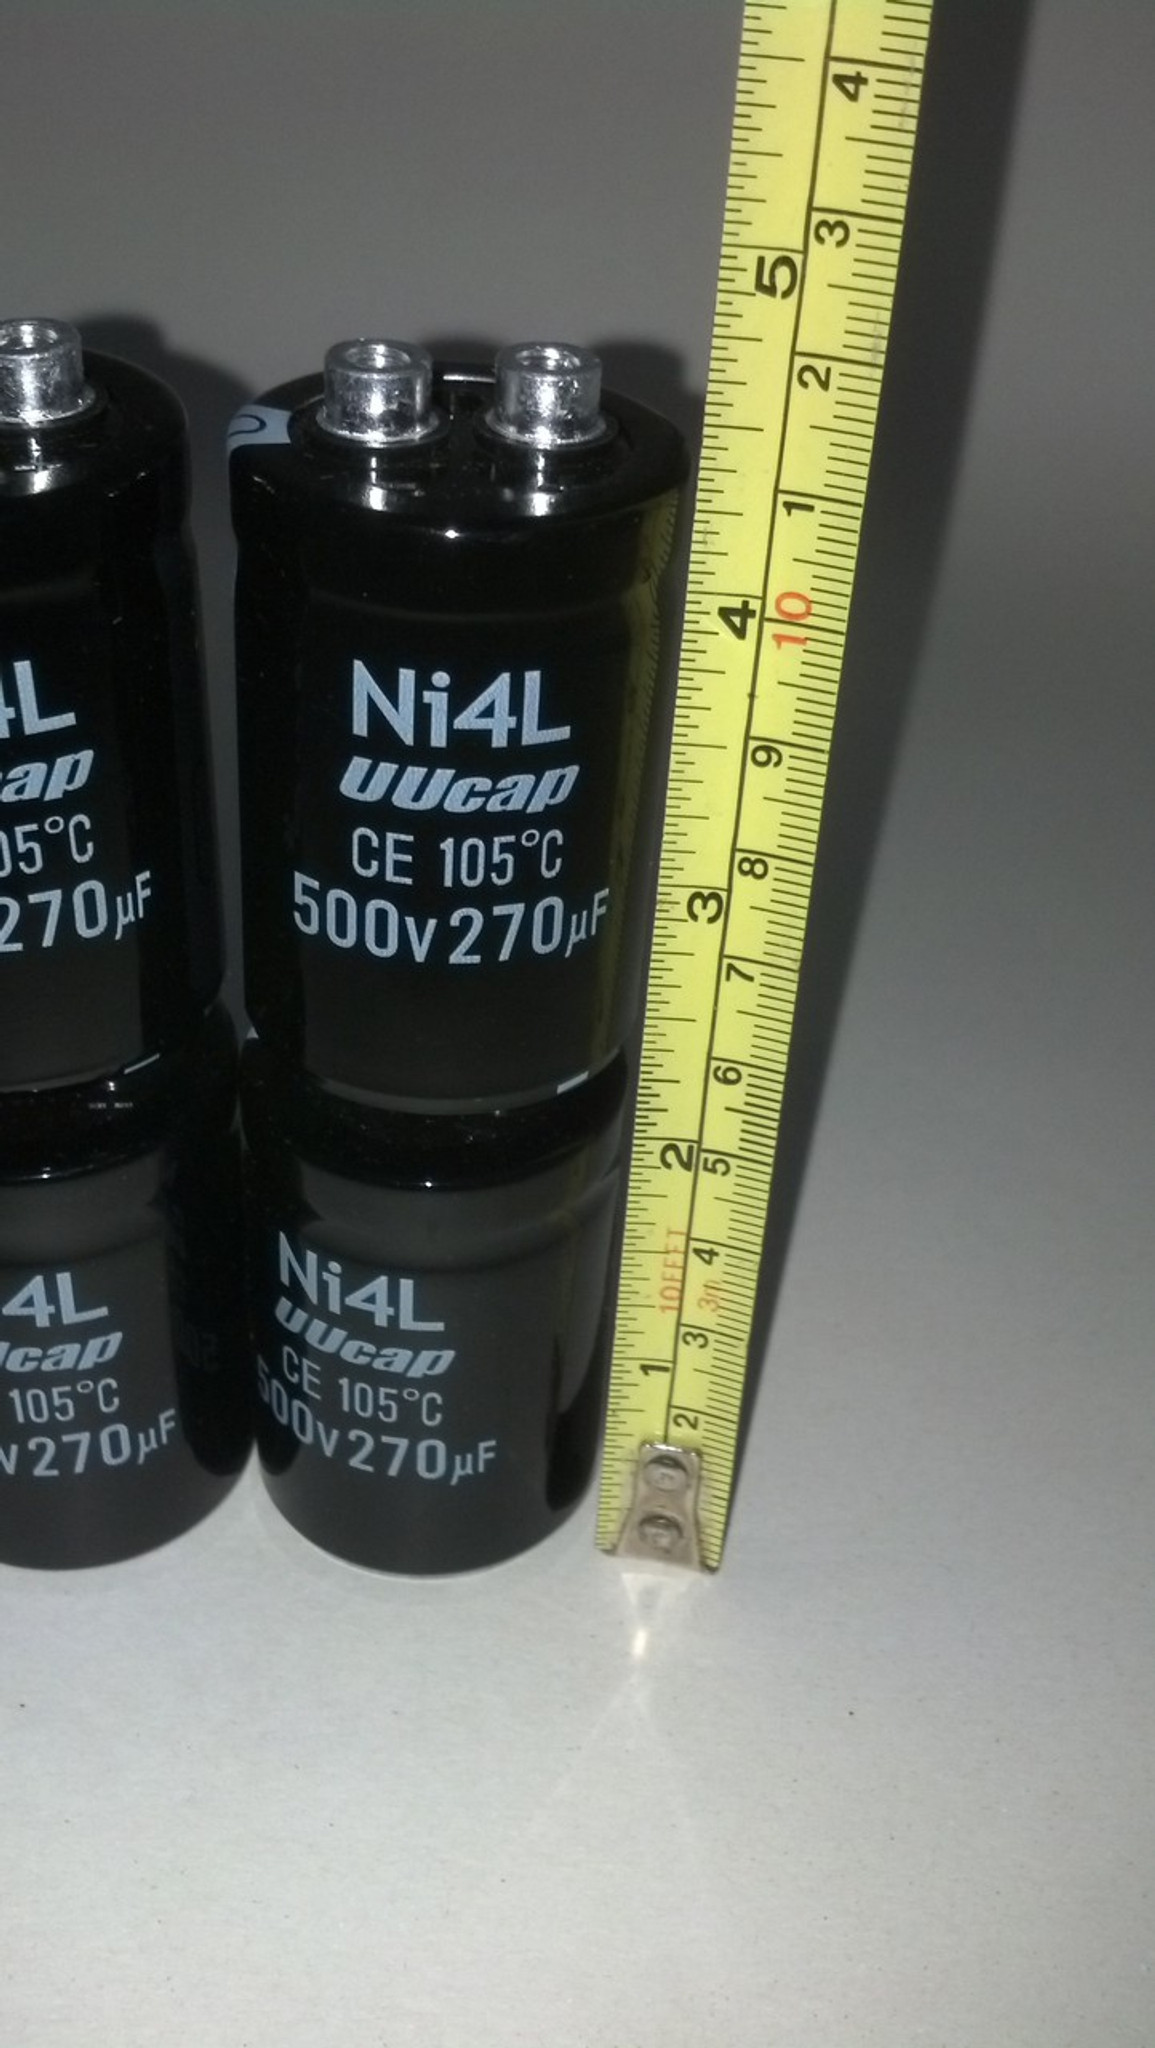 Capacitor 500v @ 270uf 105 degree C Capacitor lot of 8